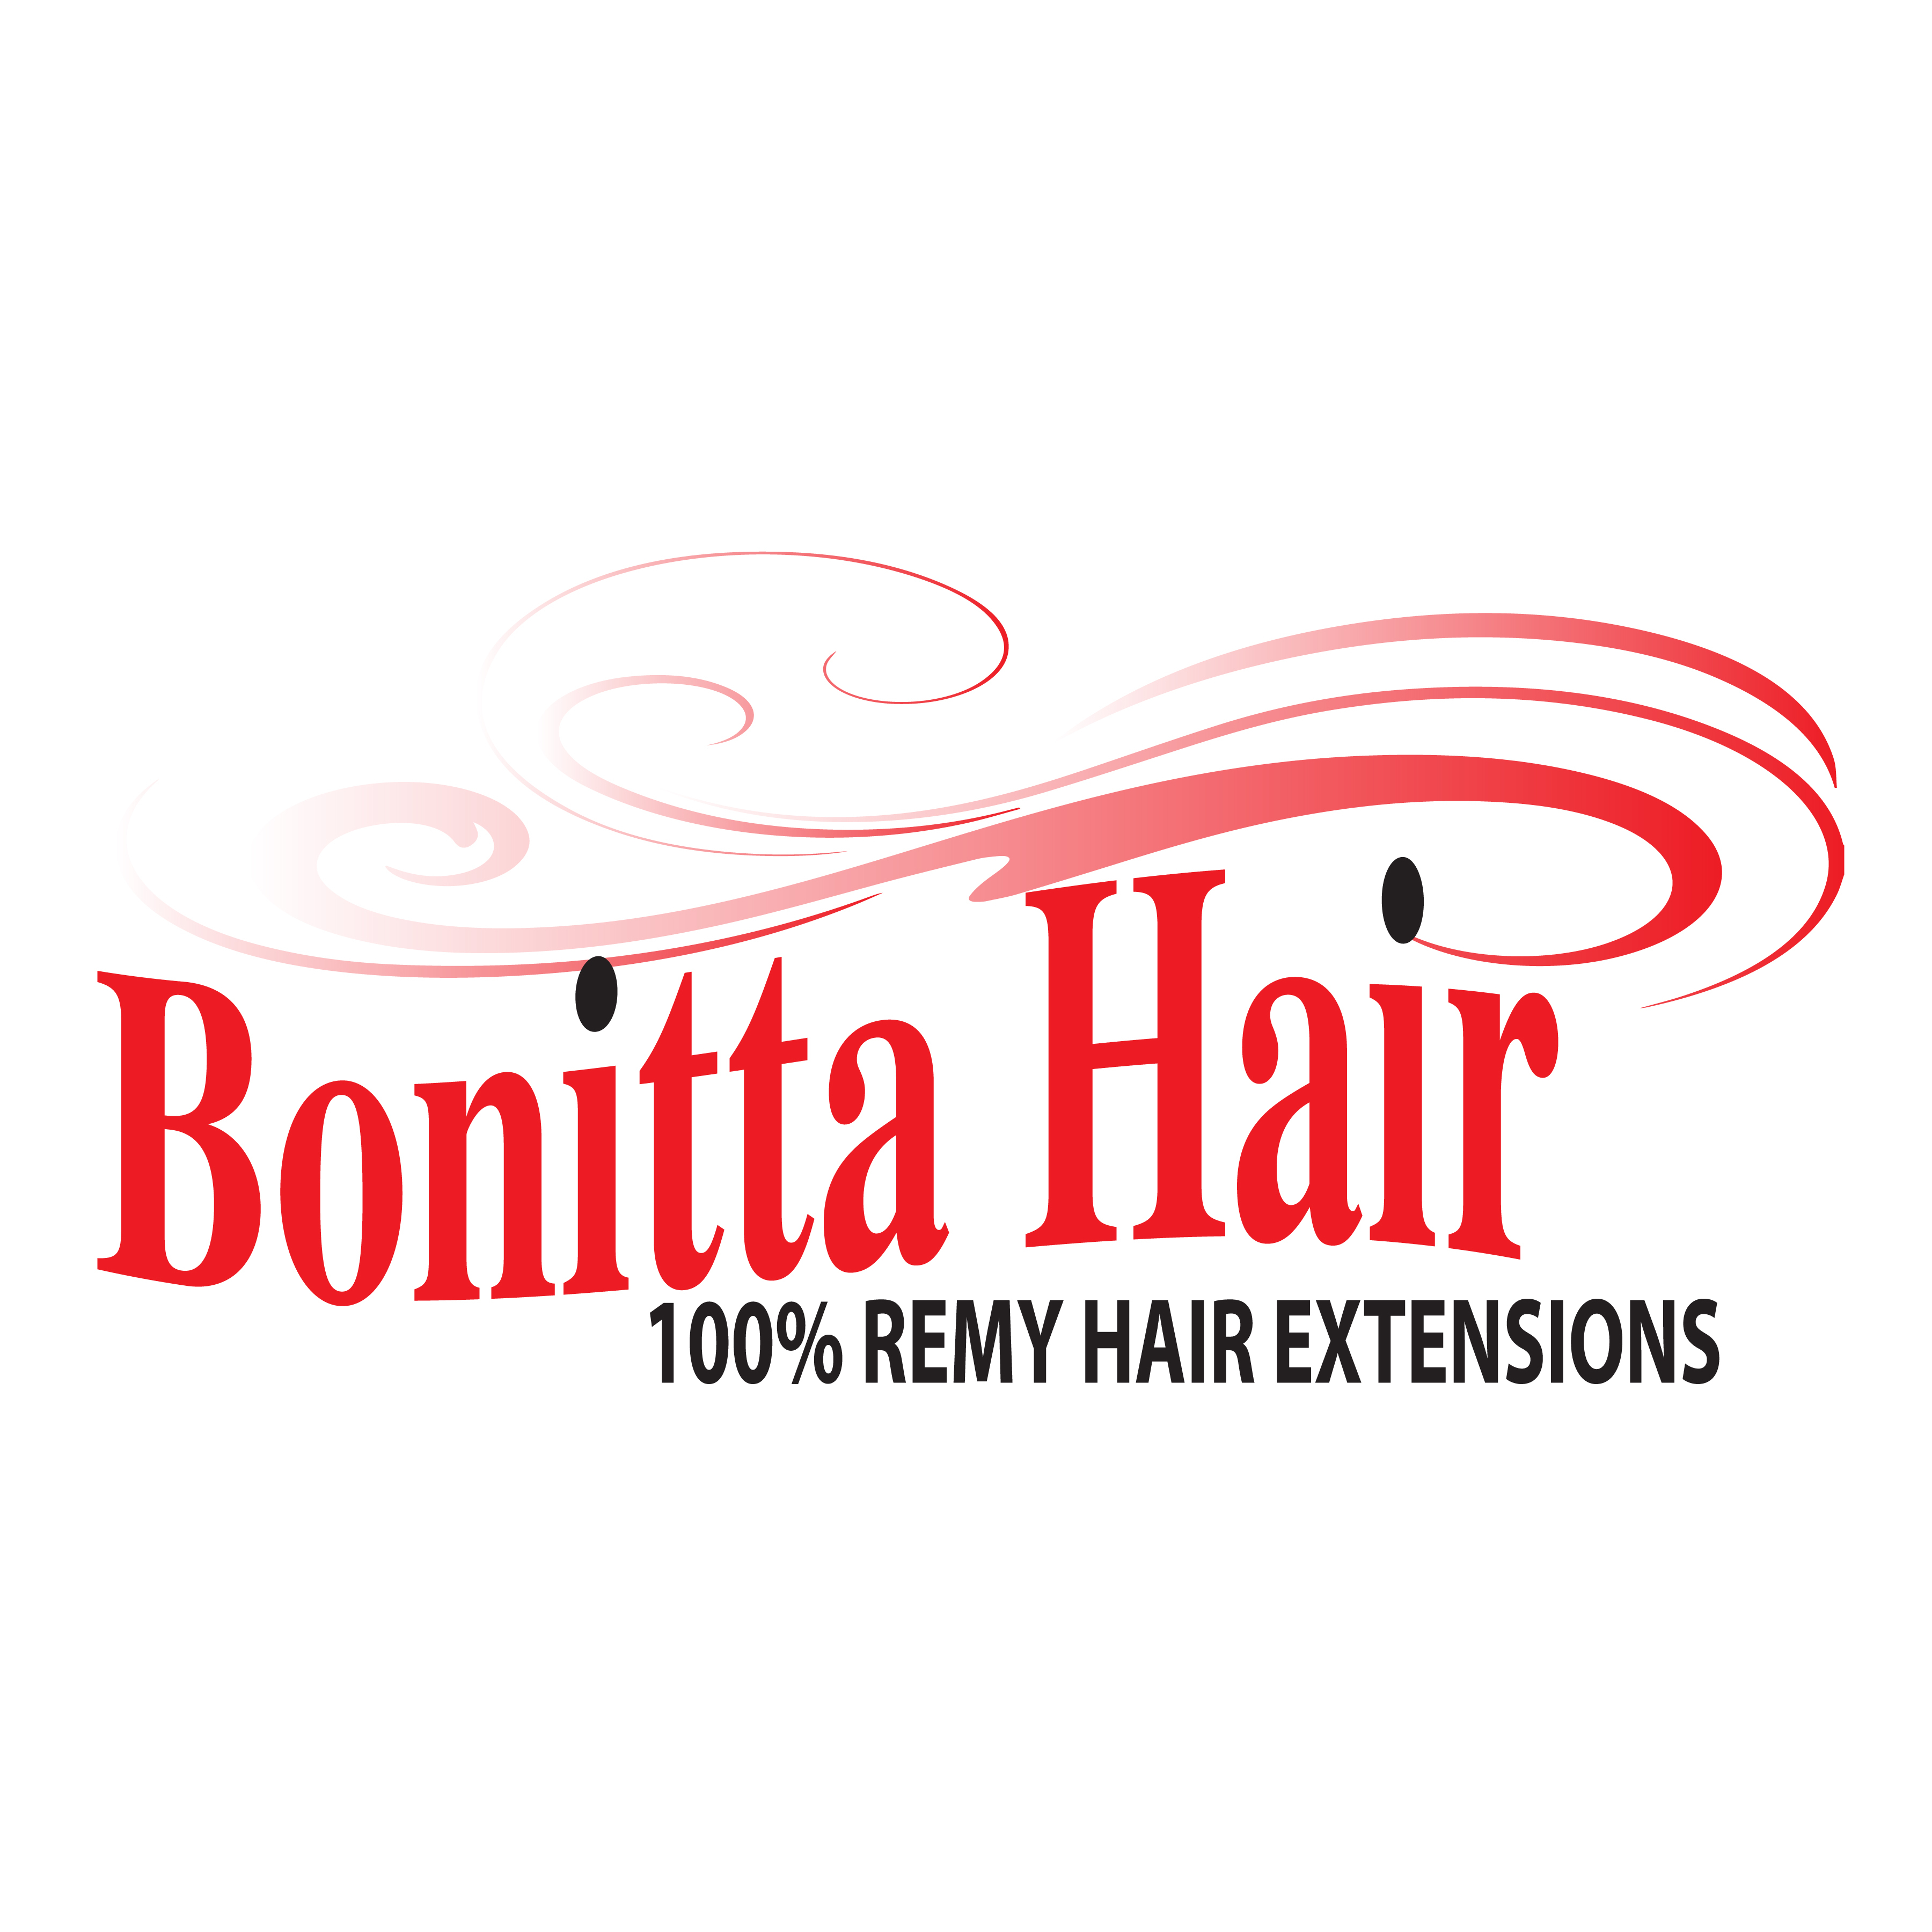 Hair extension sale 590 williams ave brooklyn ny 11207 for 5 star beauty salon portsmouth va